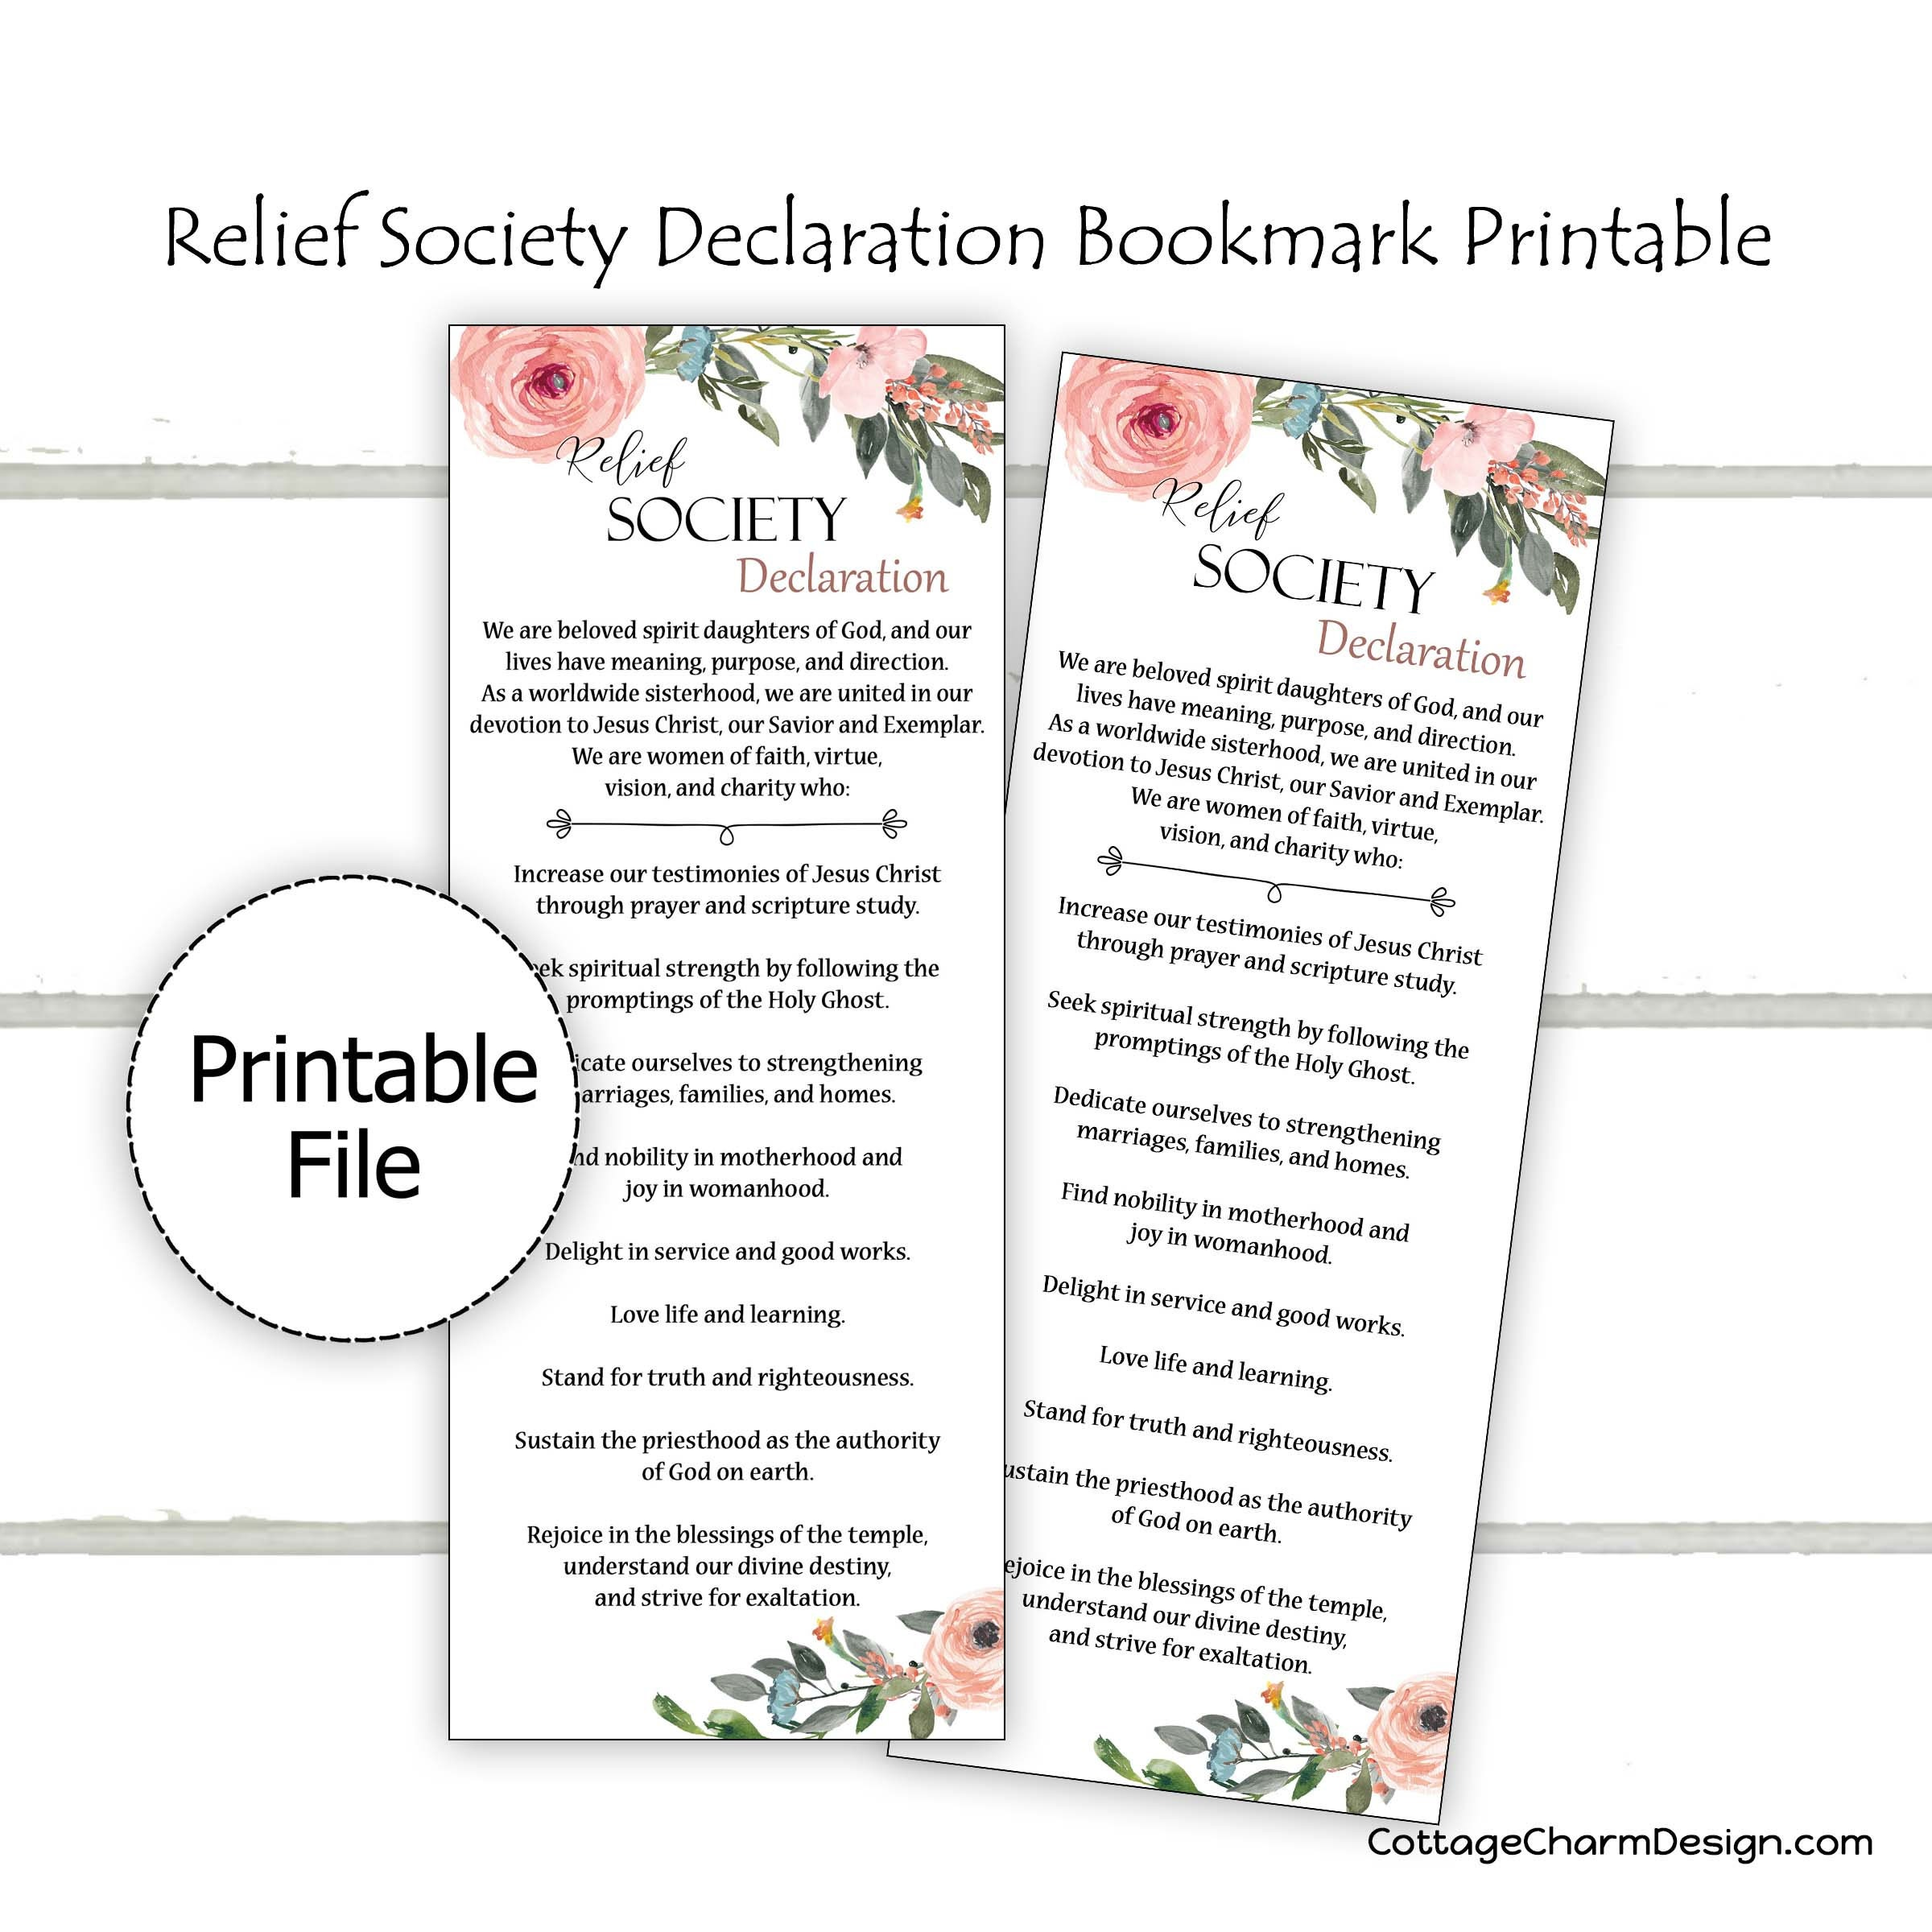 picture regarding Relief Society Declaration Printable called Reduction Tradition Declaration Bookmark Printable, Church of Jesus Christ